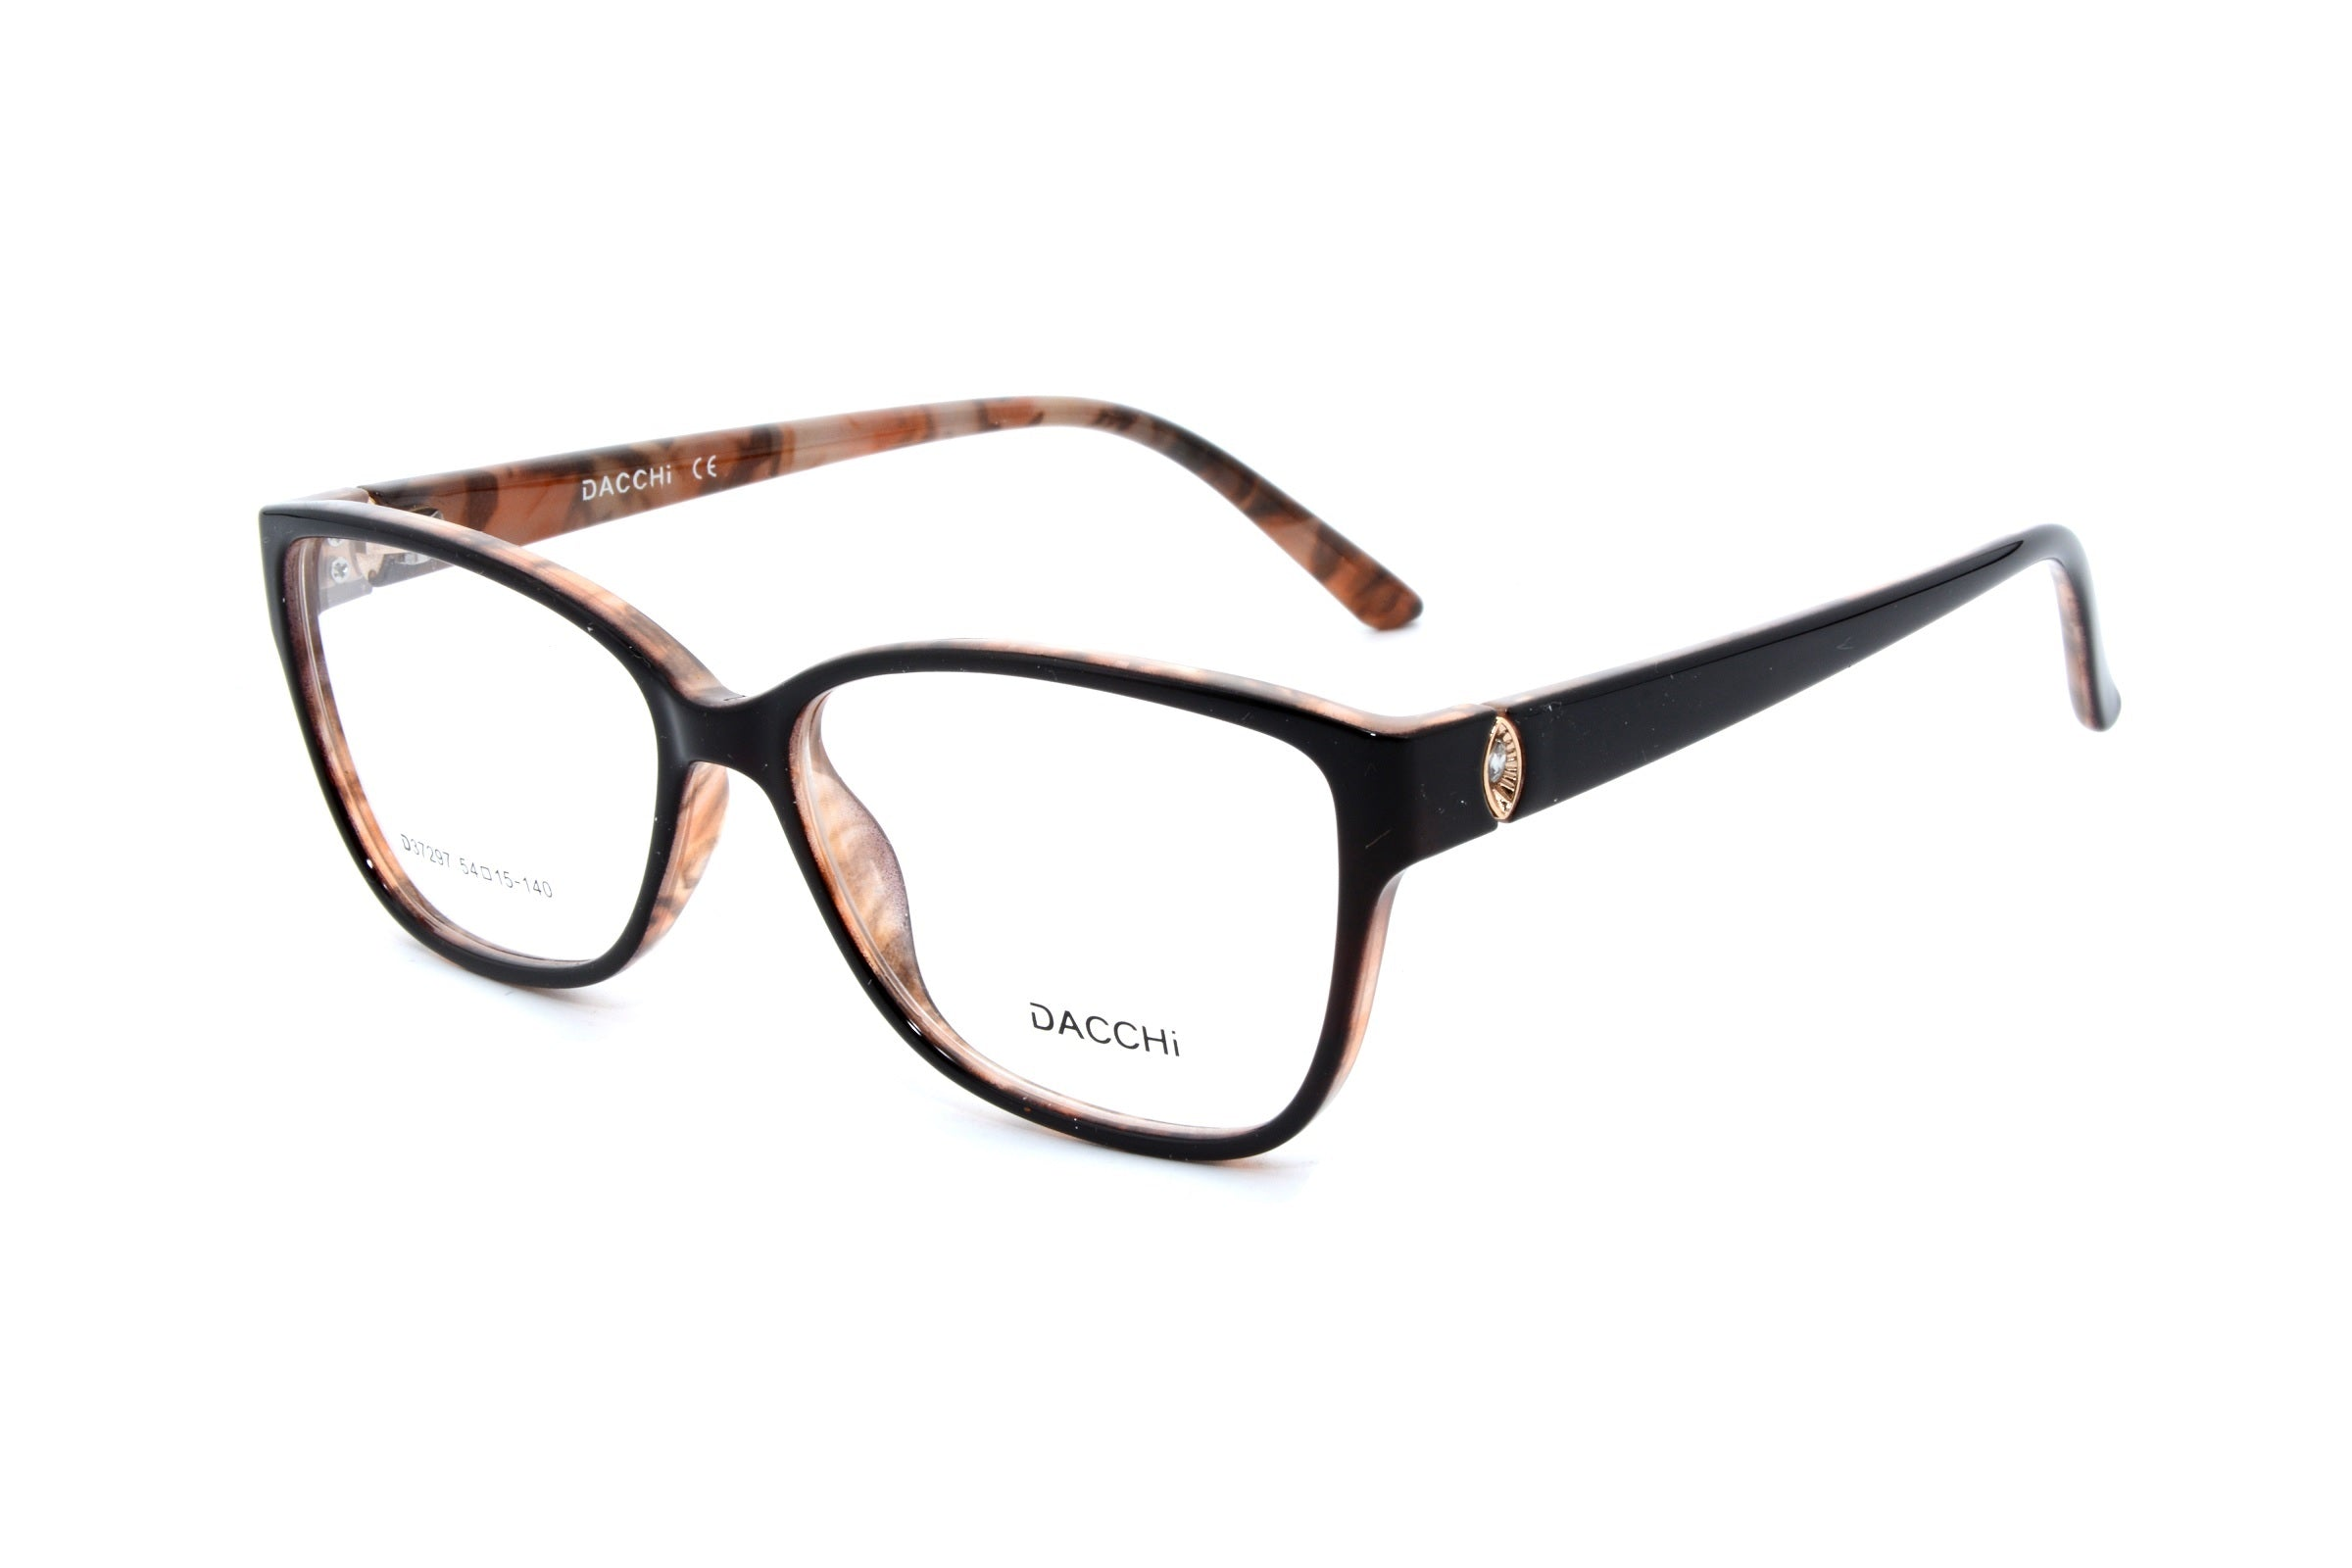 Dacchi eyewear 37297, C2 - Optics Trading